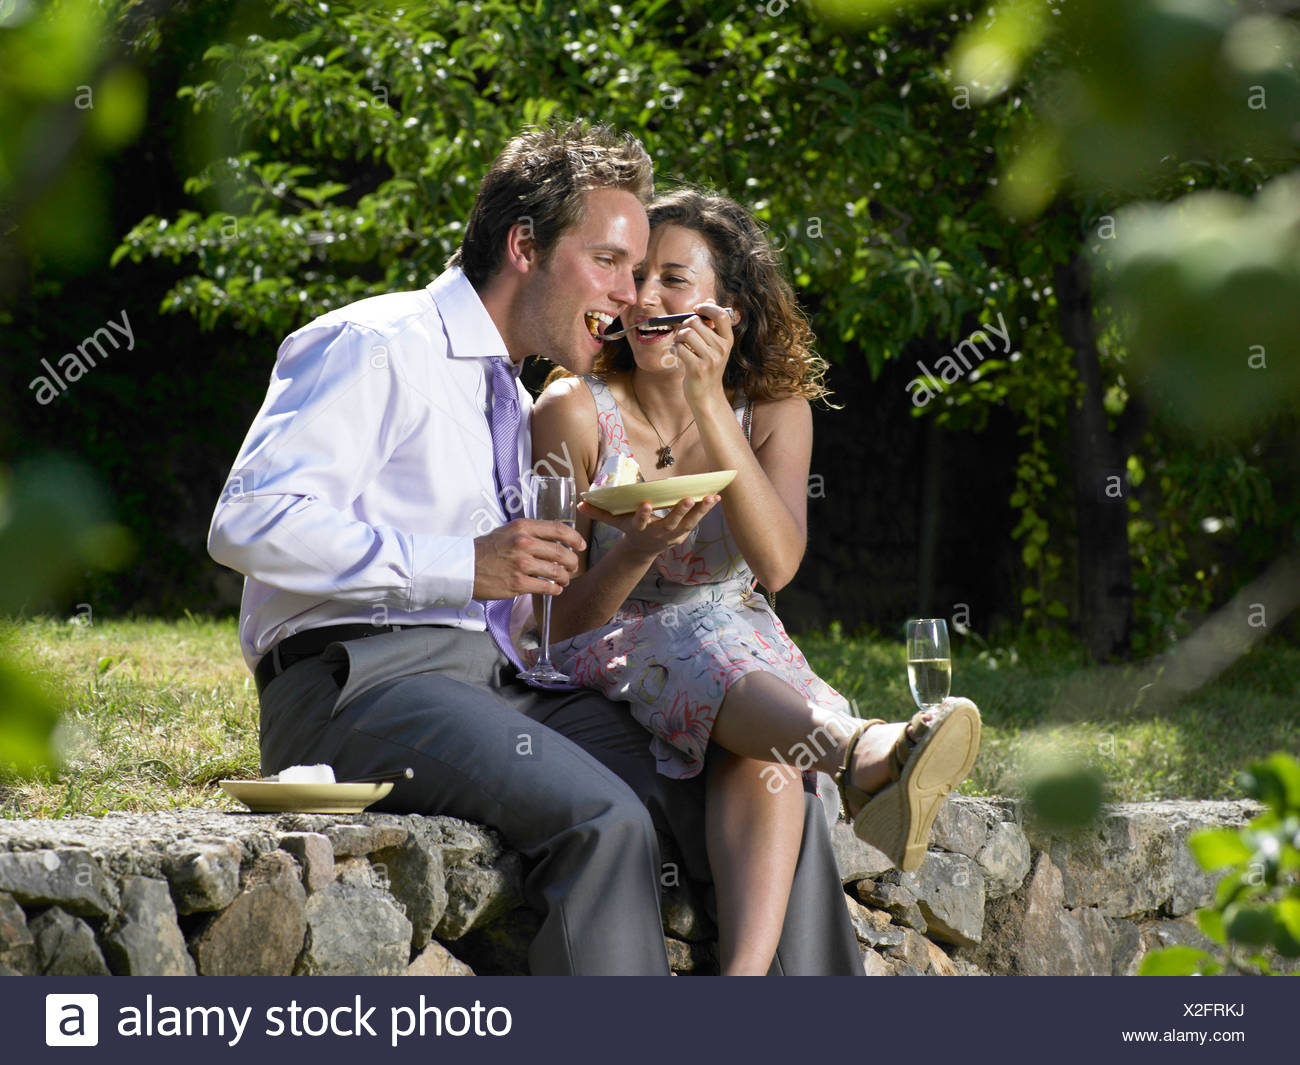 Wedding guests eating cake - Stock Image